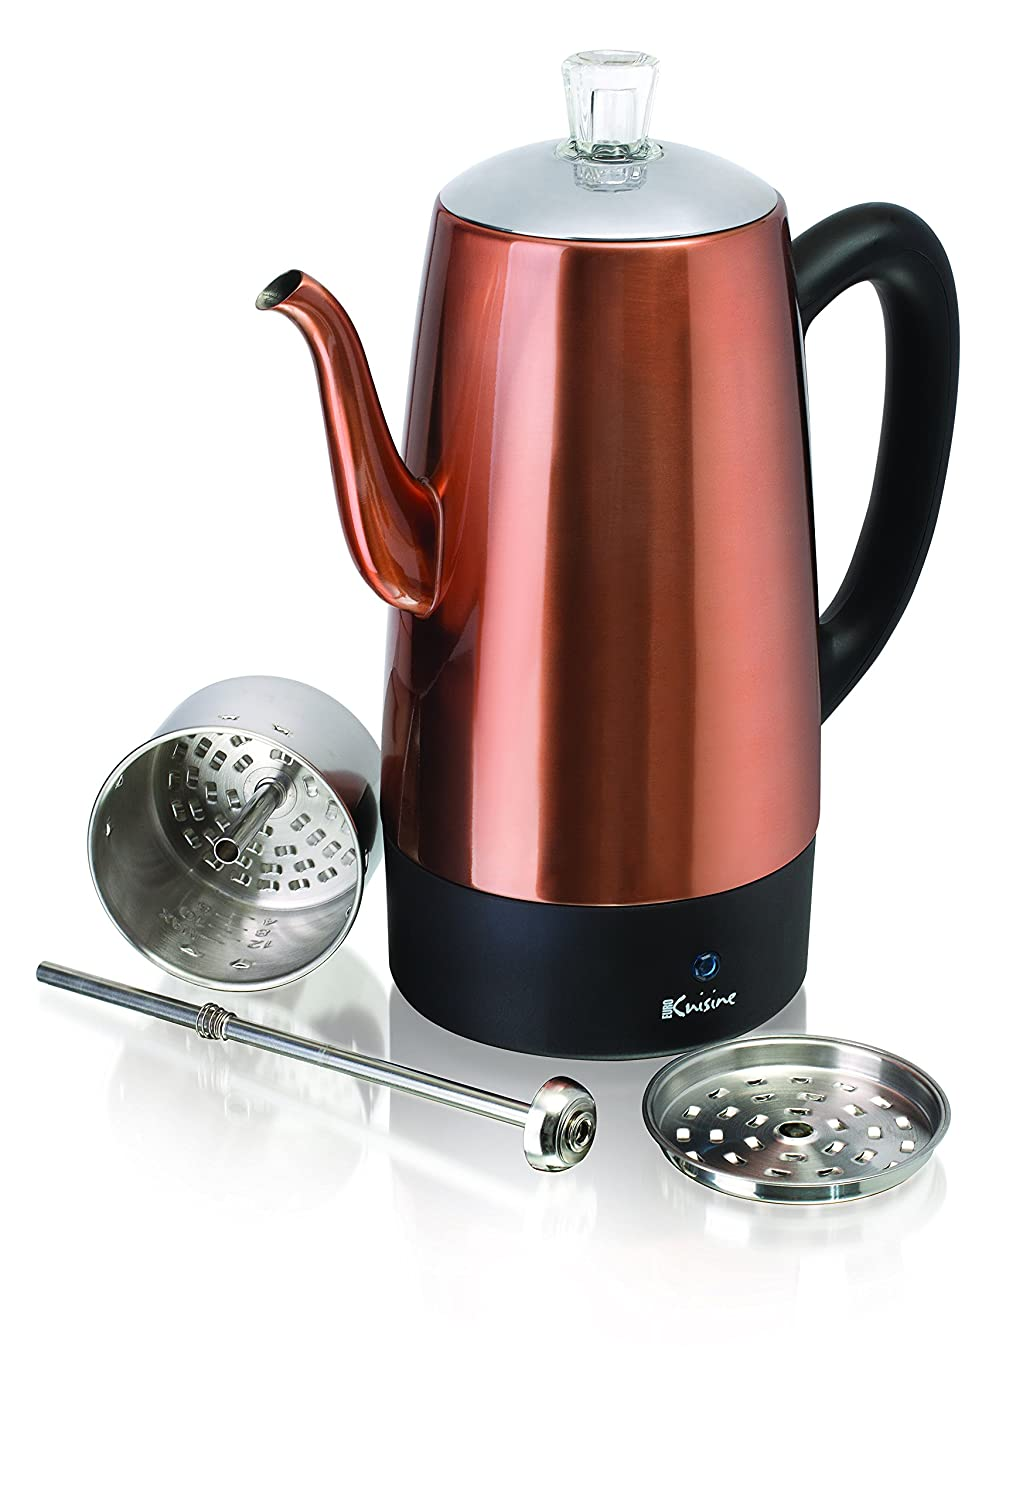 Euro Cuisine PER12 Electric Percolator - 12 Cup